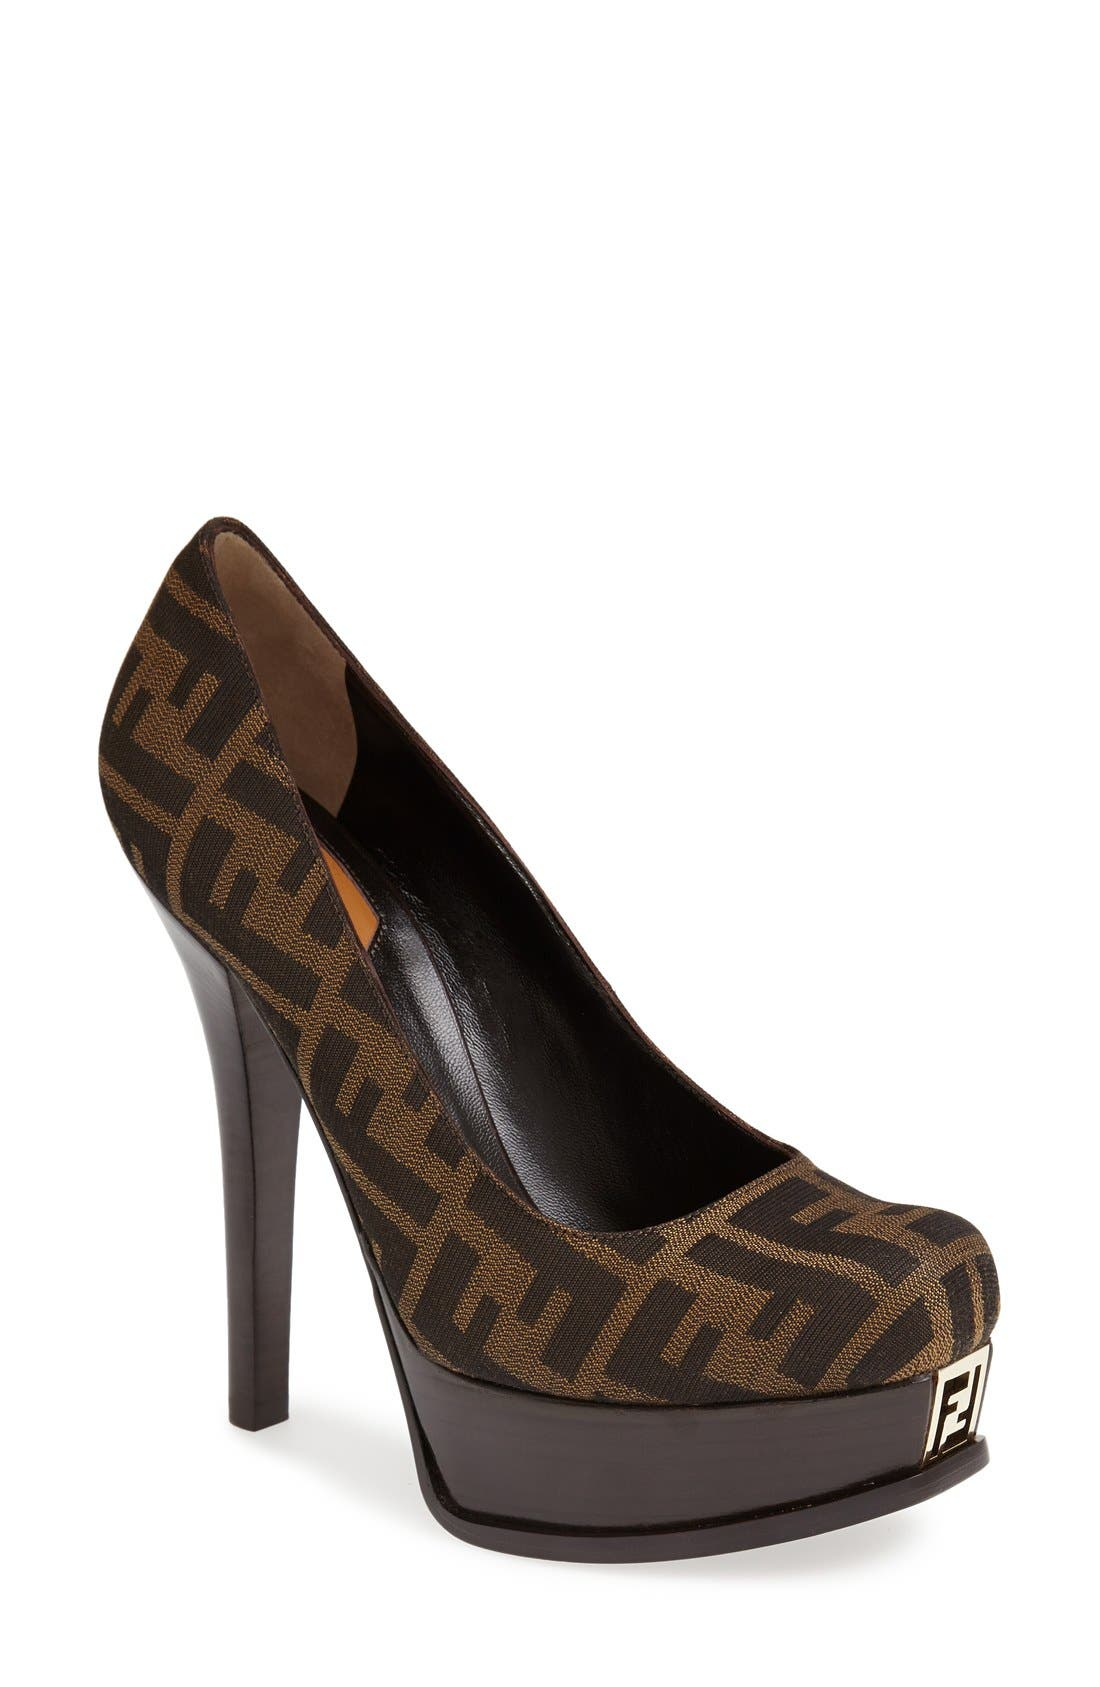 Alternate Image 1 Selected - Fendi 'Fendista Zucca' Platform Pump